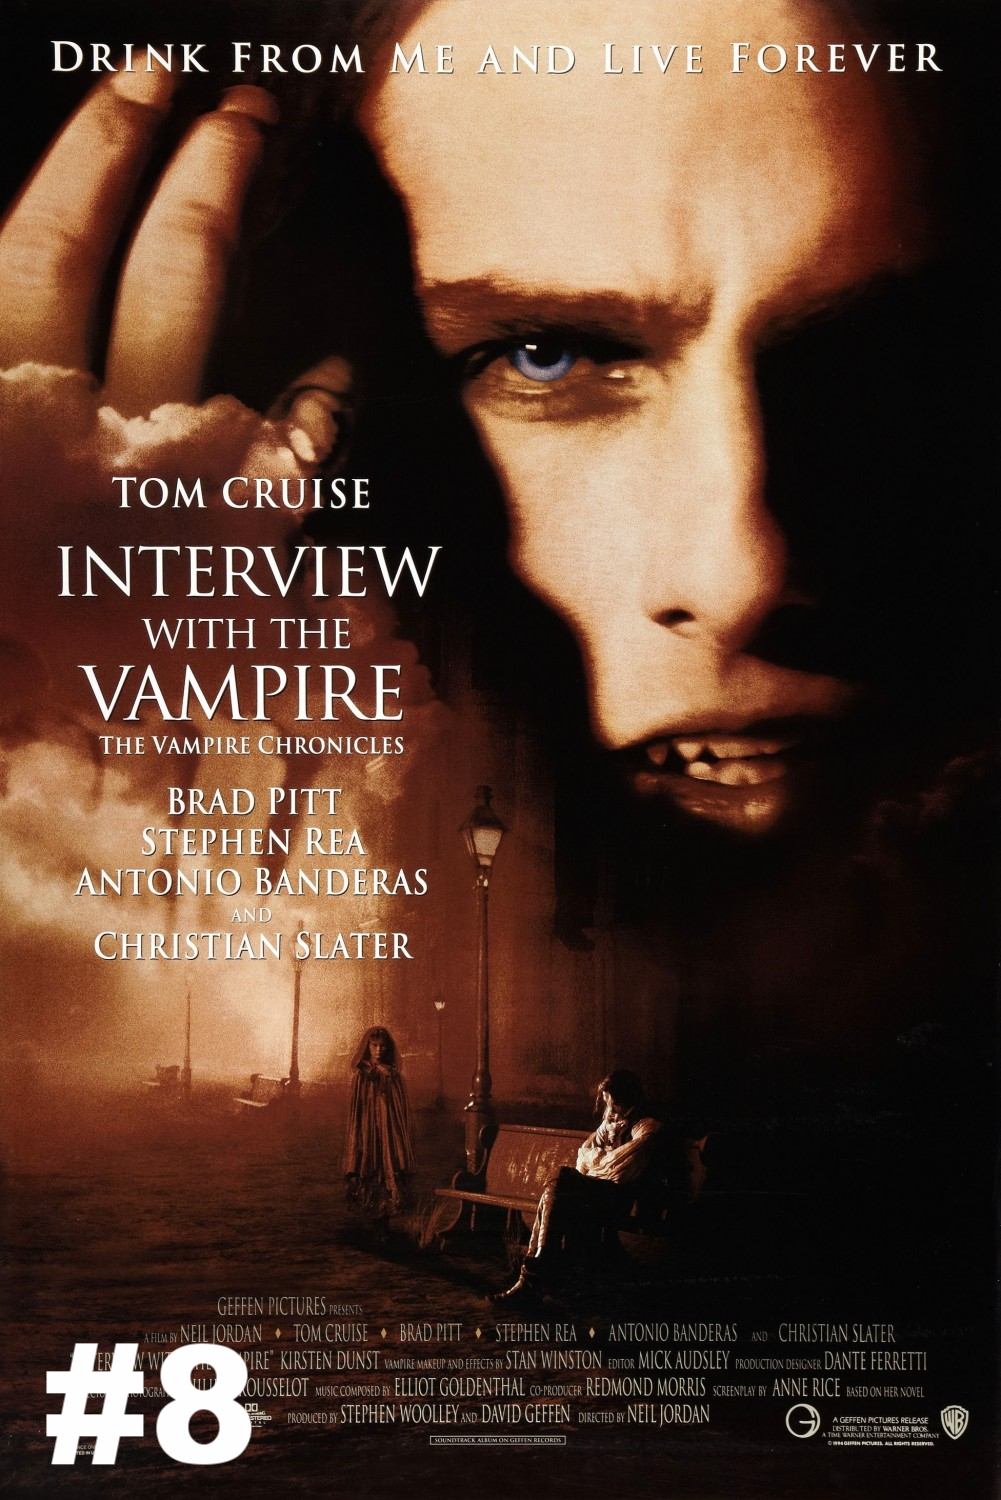 interview_with_the_vampire_xlg.jpg